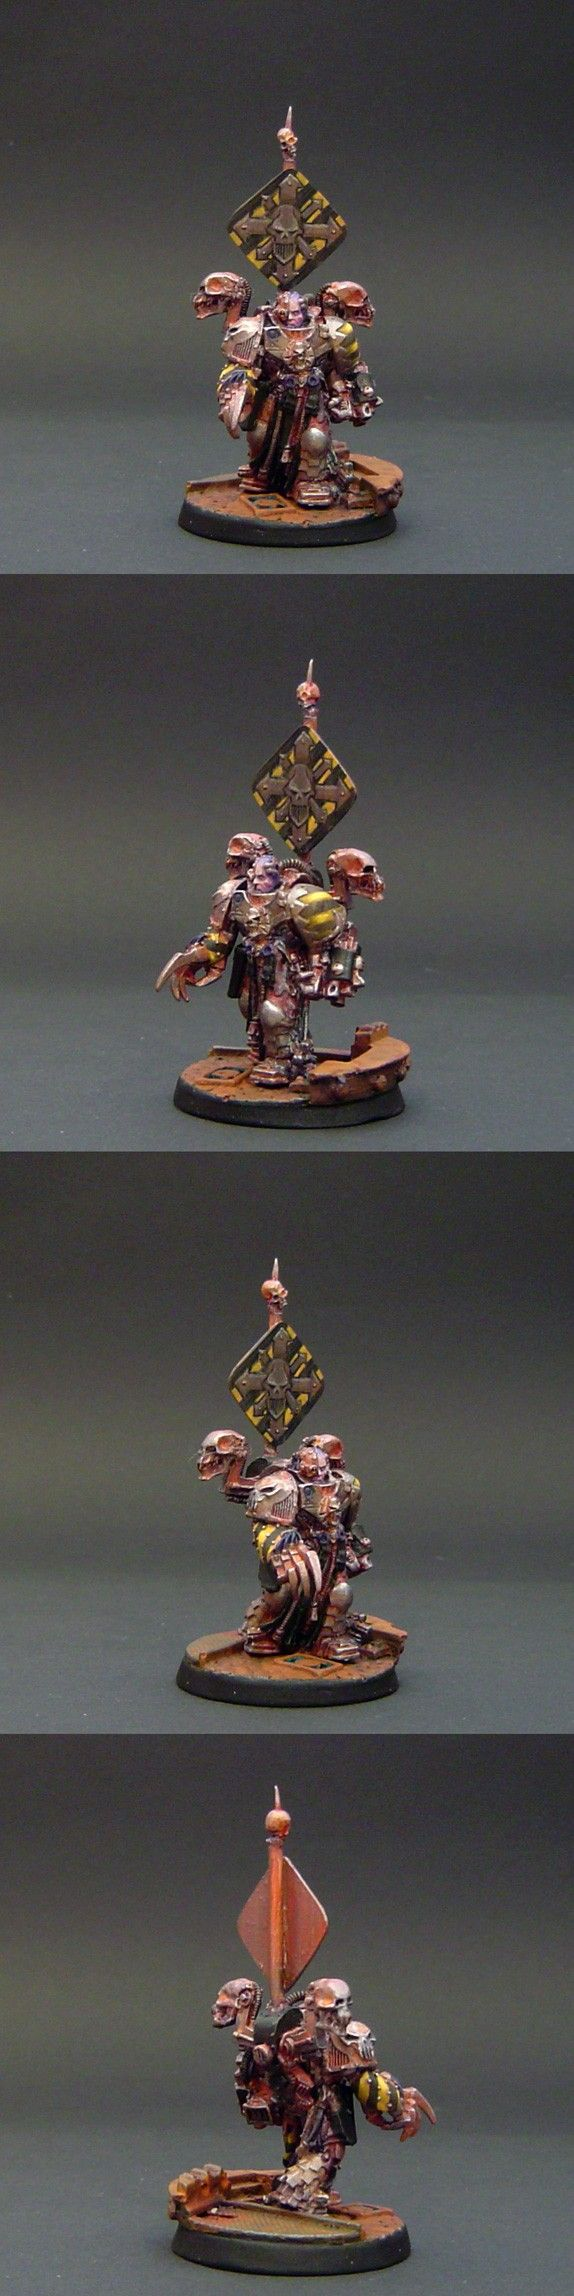 Character Design Forge : Best images about iron warriors on pinterest